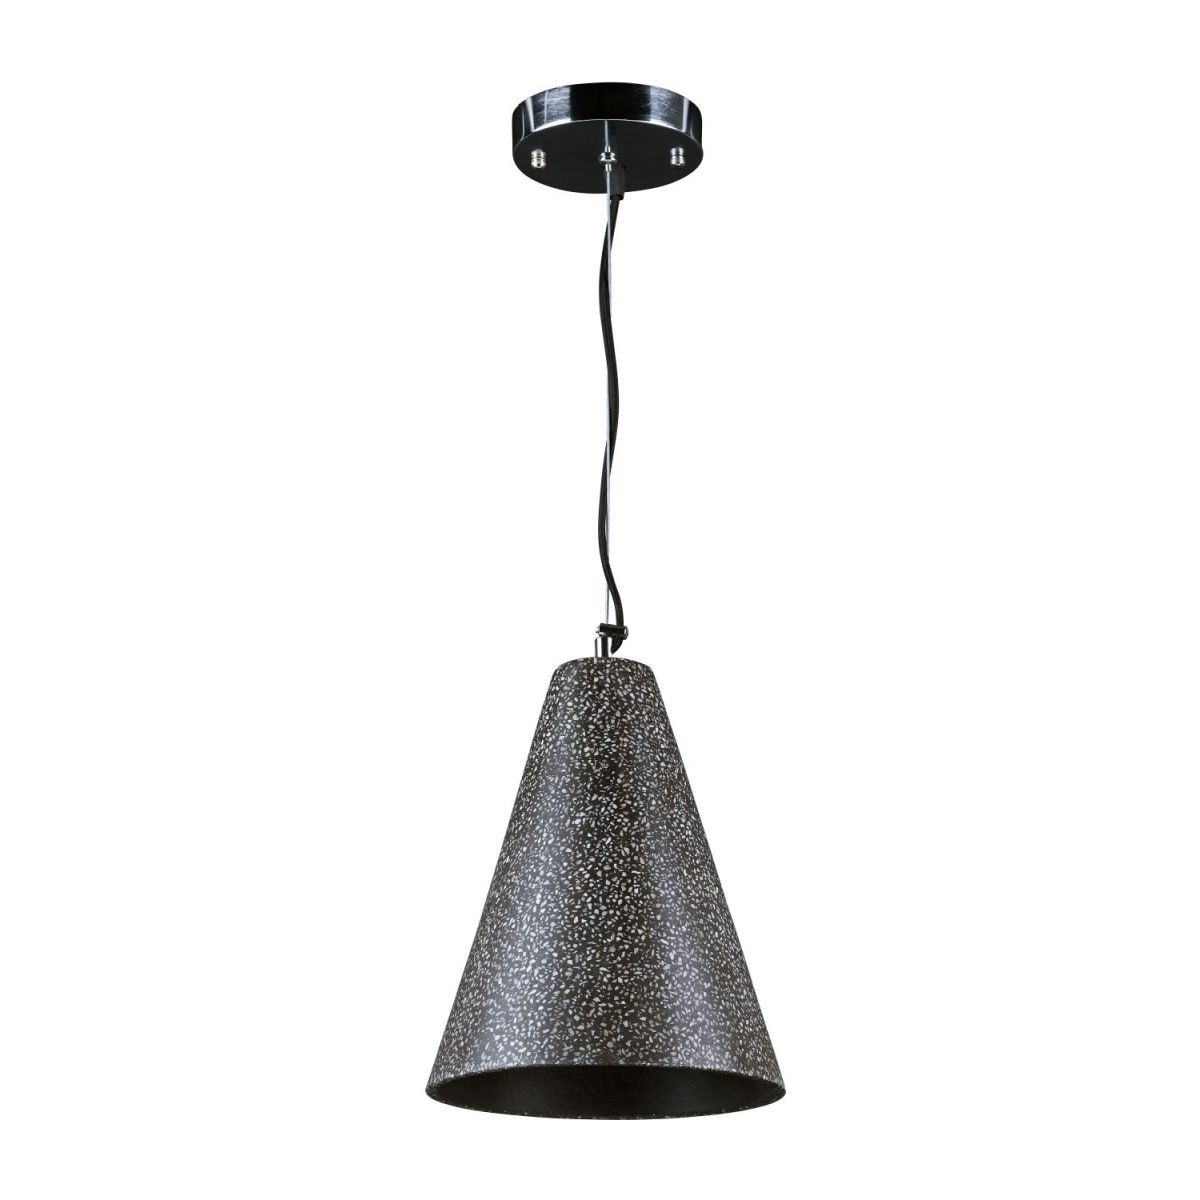 Ceiling lamp made of terrazzo, anthracite n°1